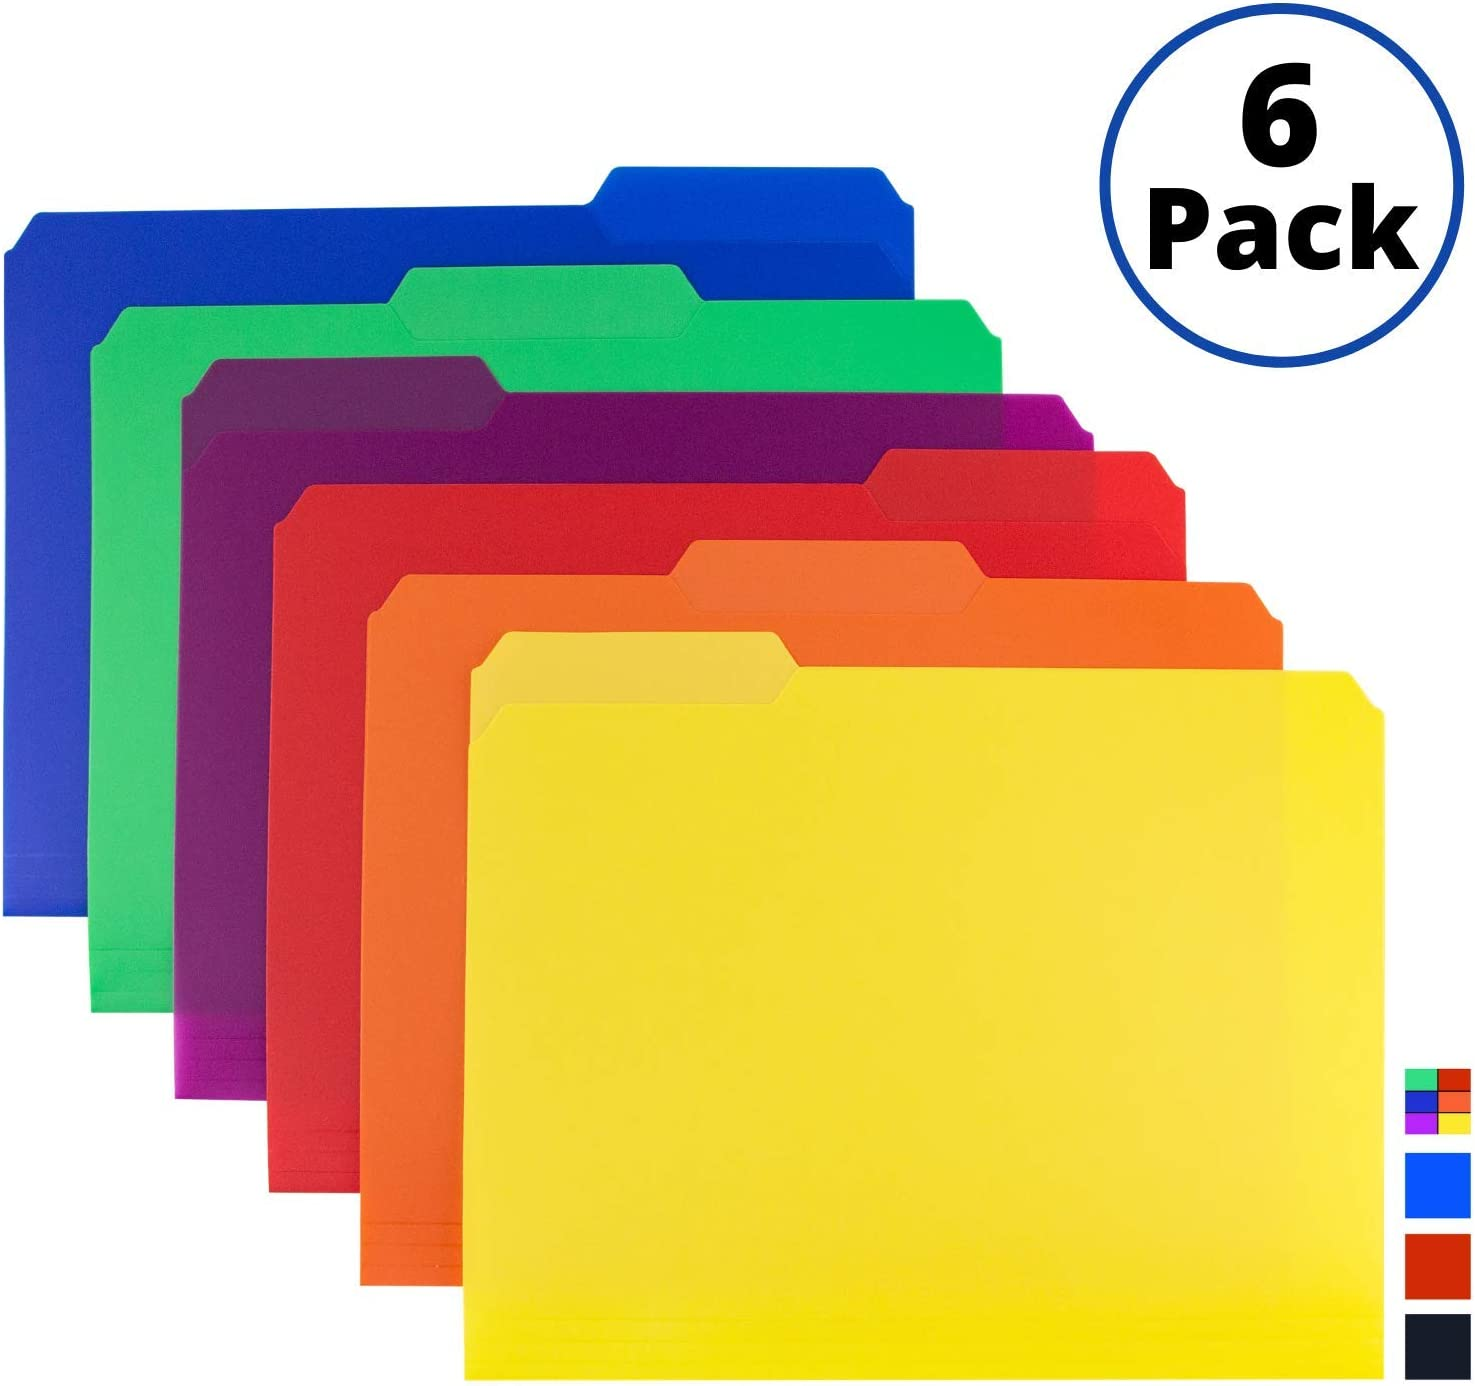 Colored Plastic 3-TAB File Folders (6 Pack, Assorted Colors) Letter Size, 1/3-Cut Tabs, Labels Included, Writable Erasable Top Tabs, Durable, Tear-Resistant, Acid-Free for Document Filing Storage